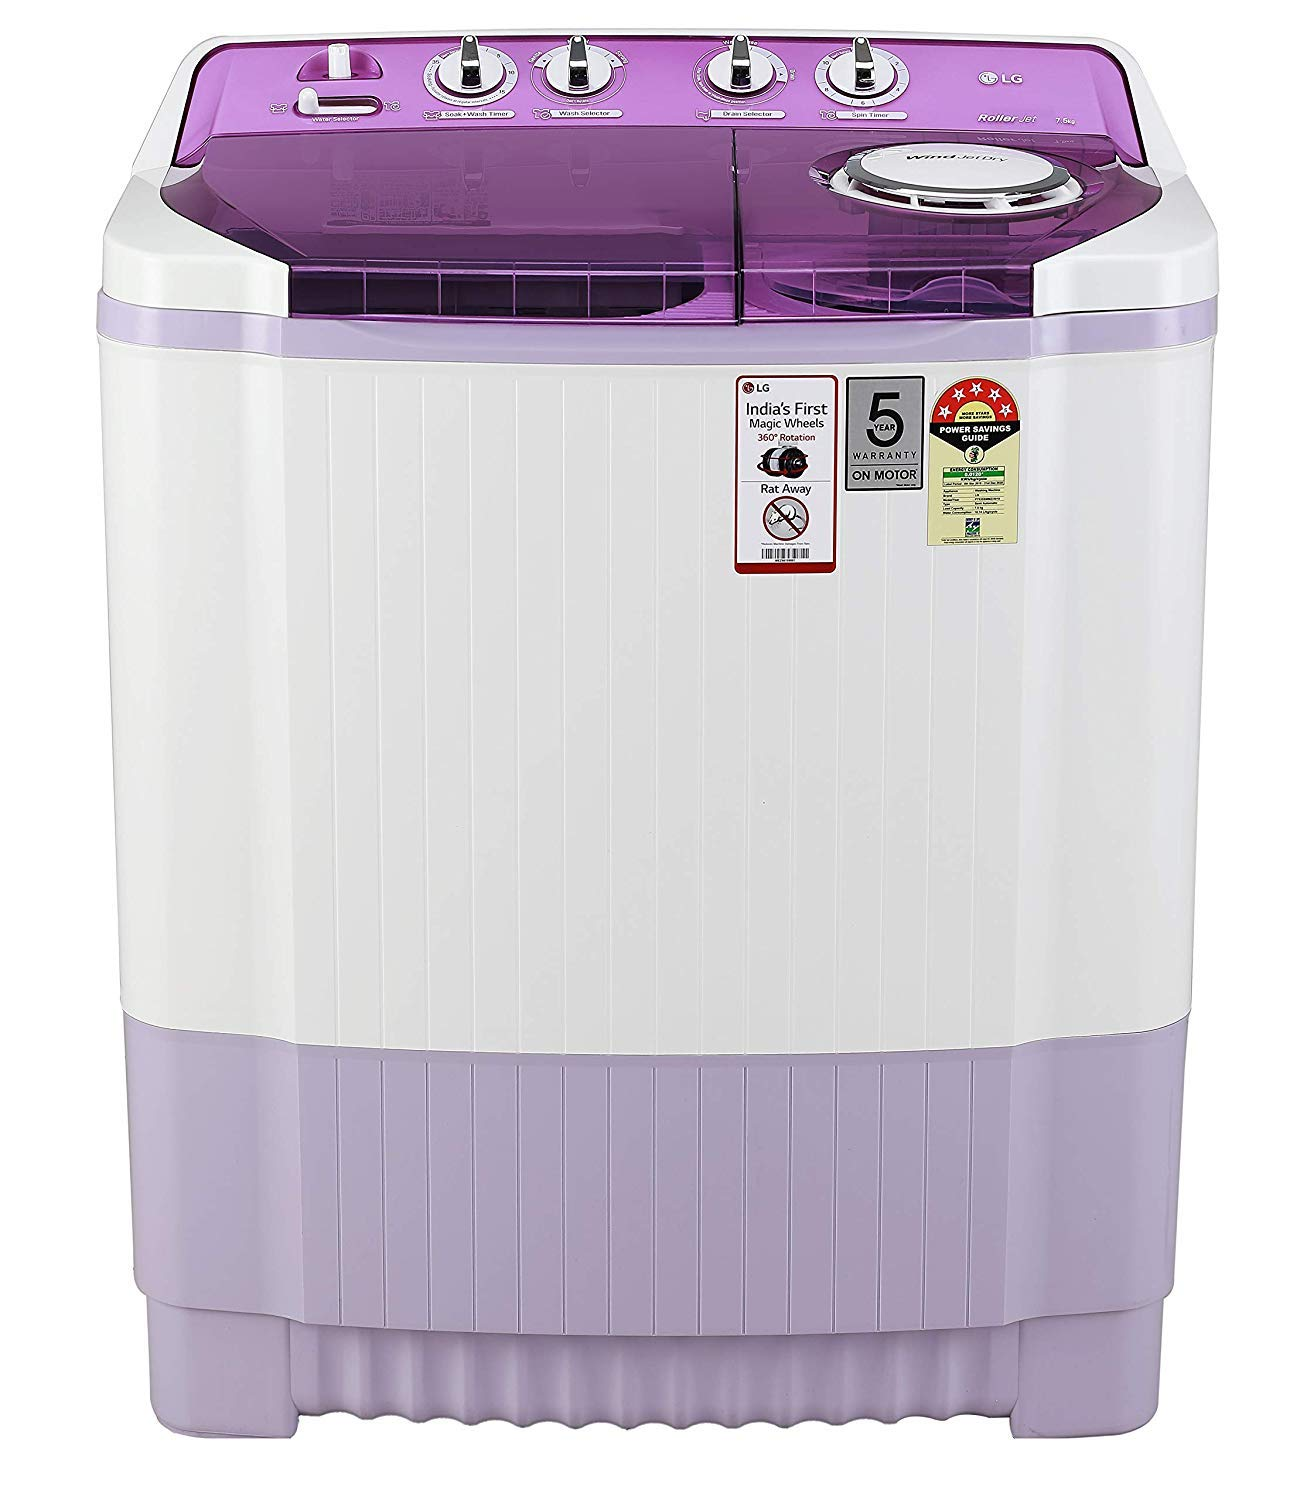 LG 7.5 Kg Best Semi Automatic Washing Machine